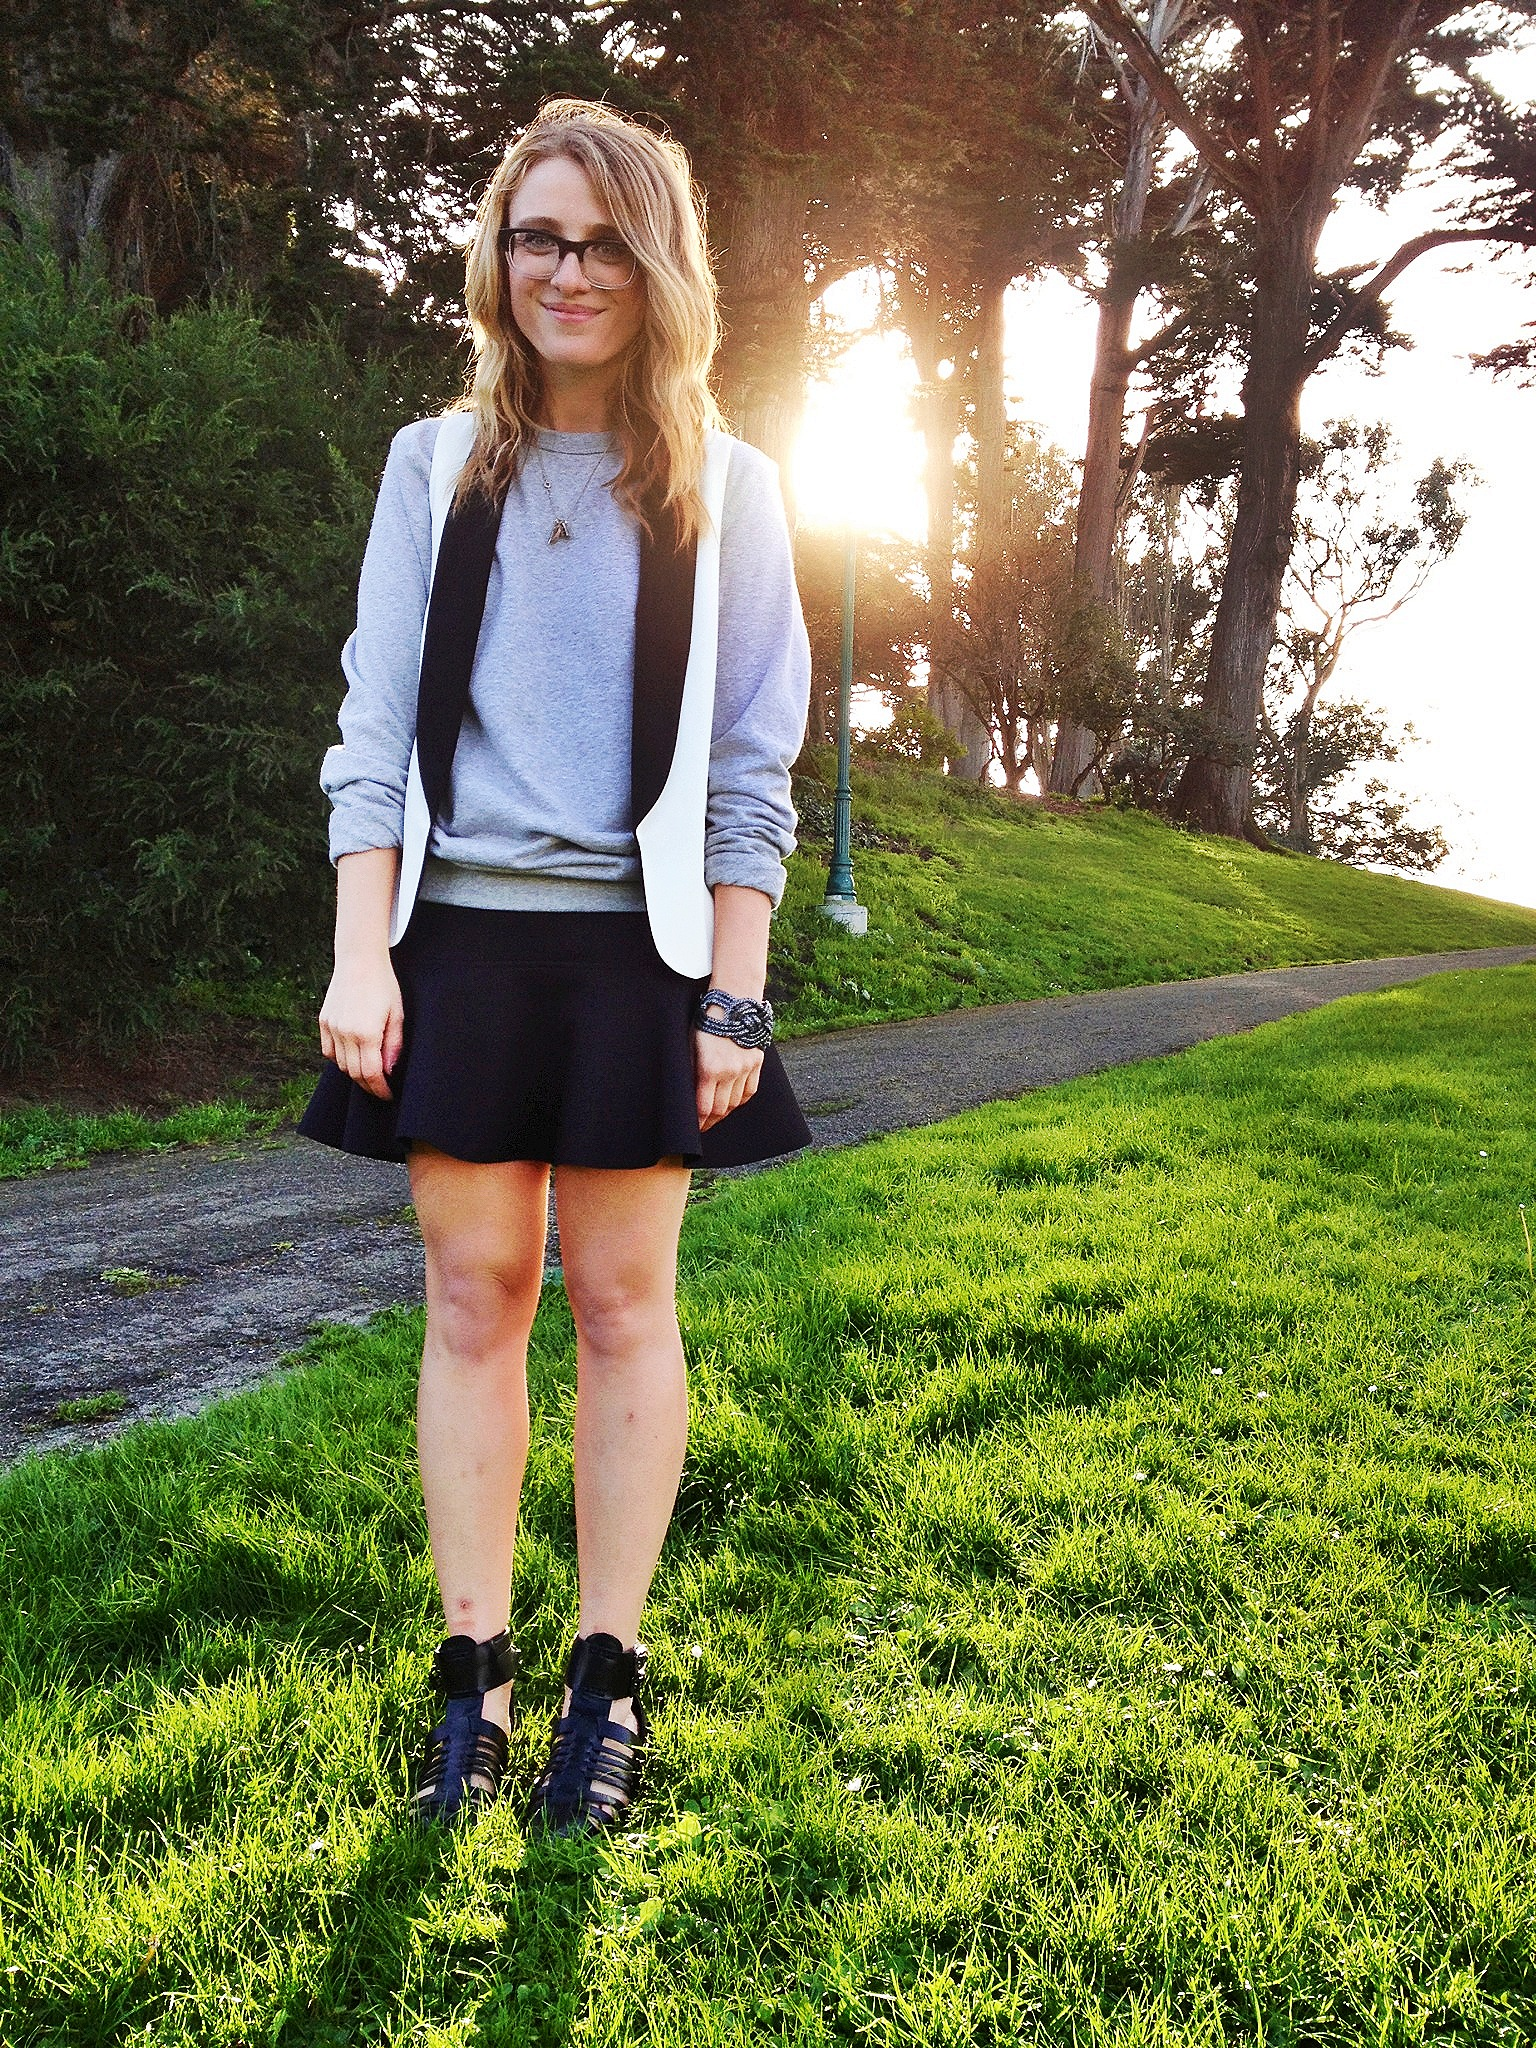 Sweatshirt: H&M | Vest: F21 | Skirt: H&M | Shoes: Zara | Bracelet: F21